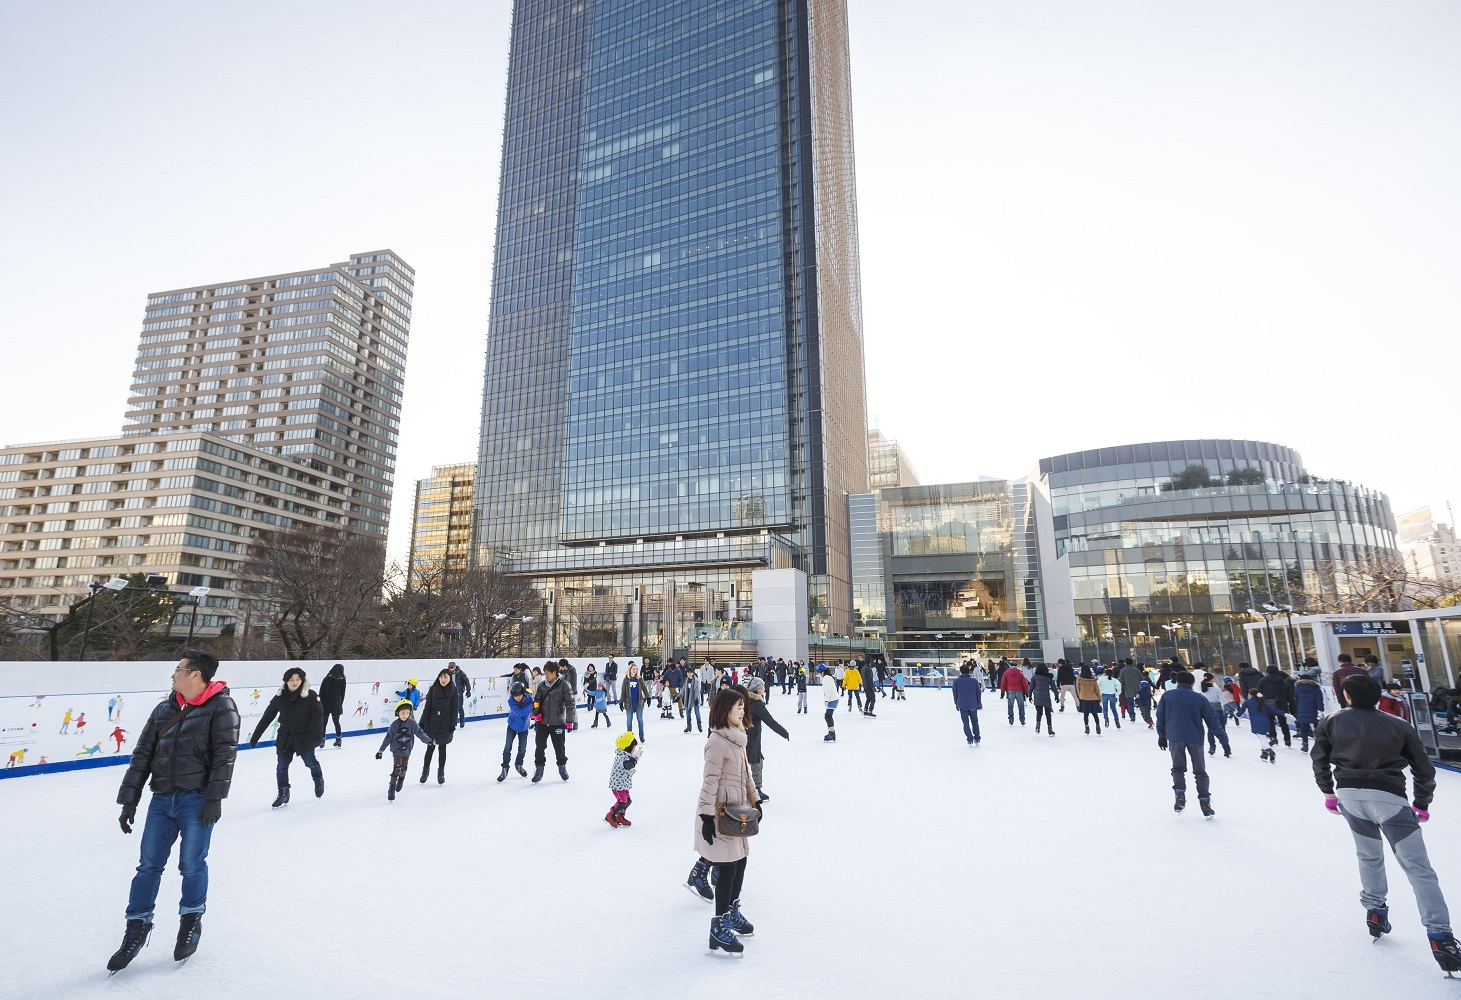 tokyo midtown ice rink 2017 by day